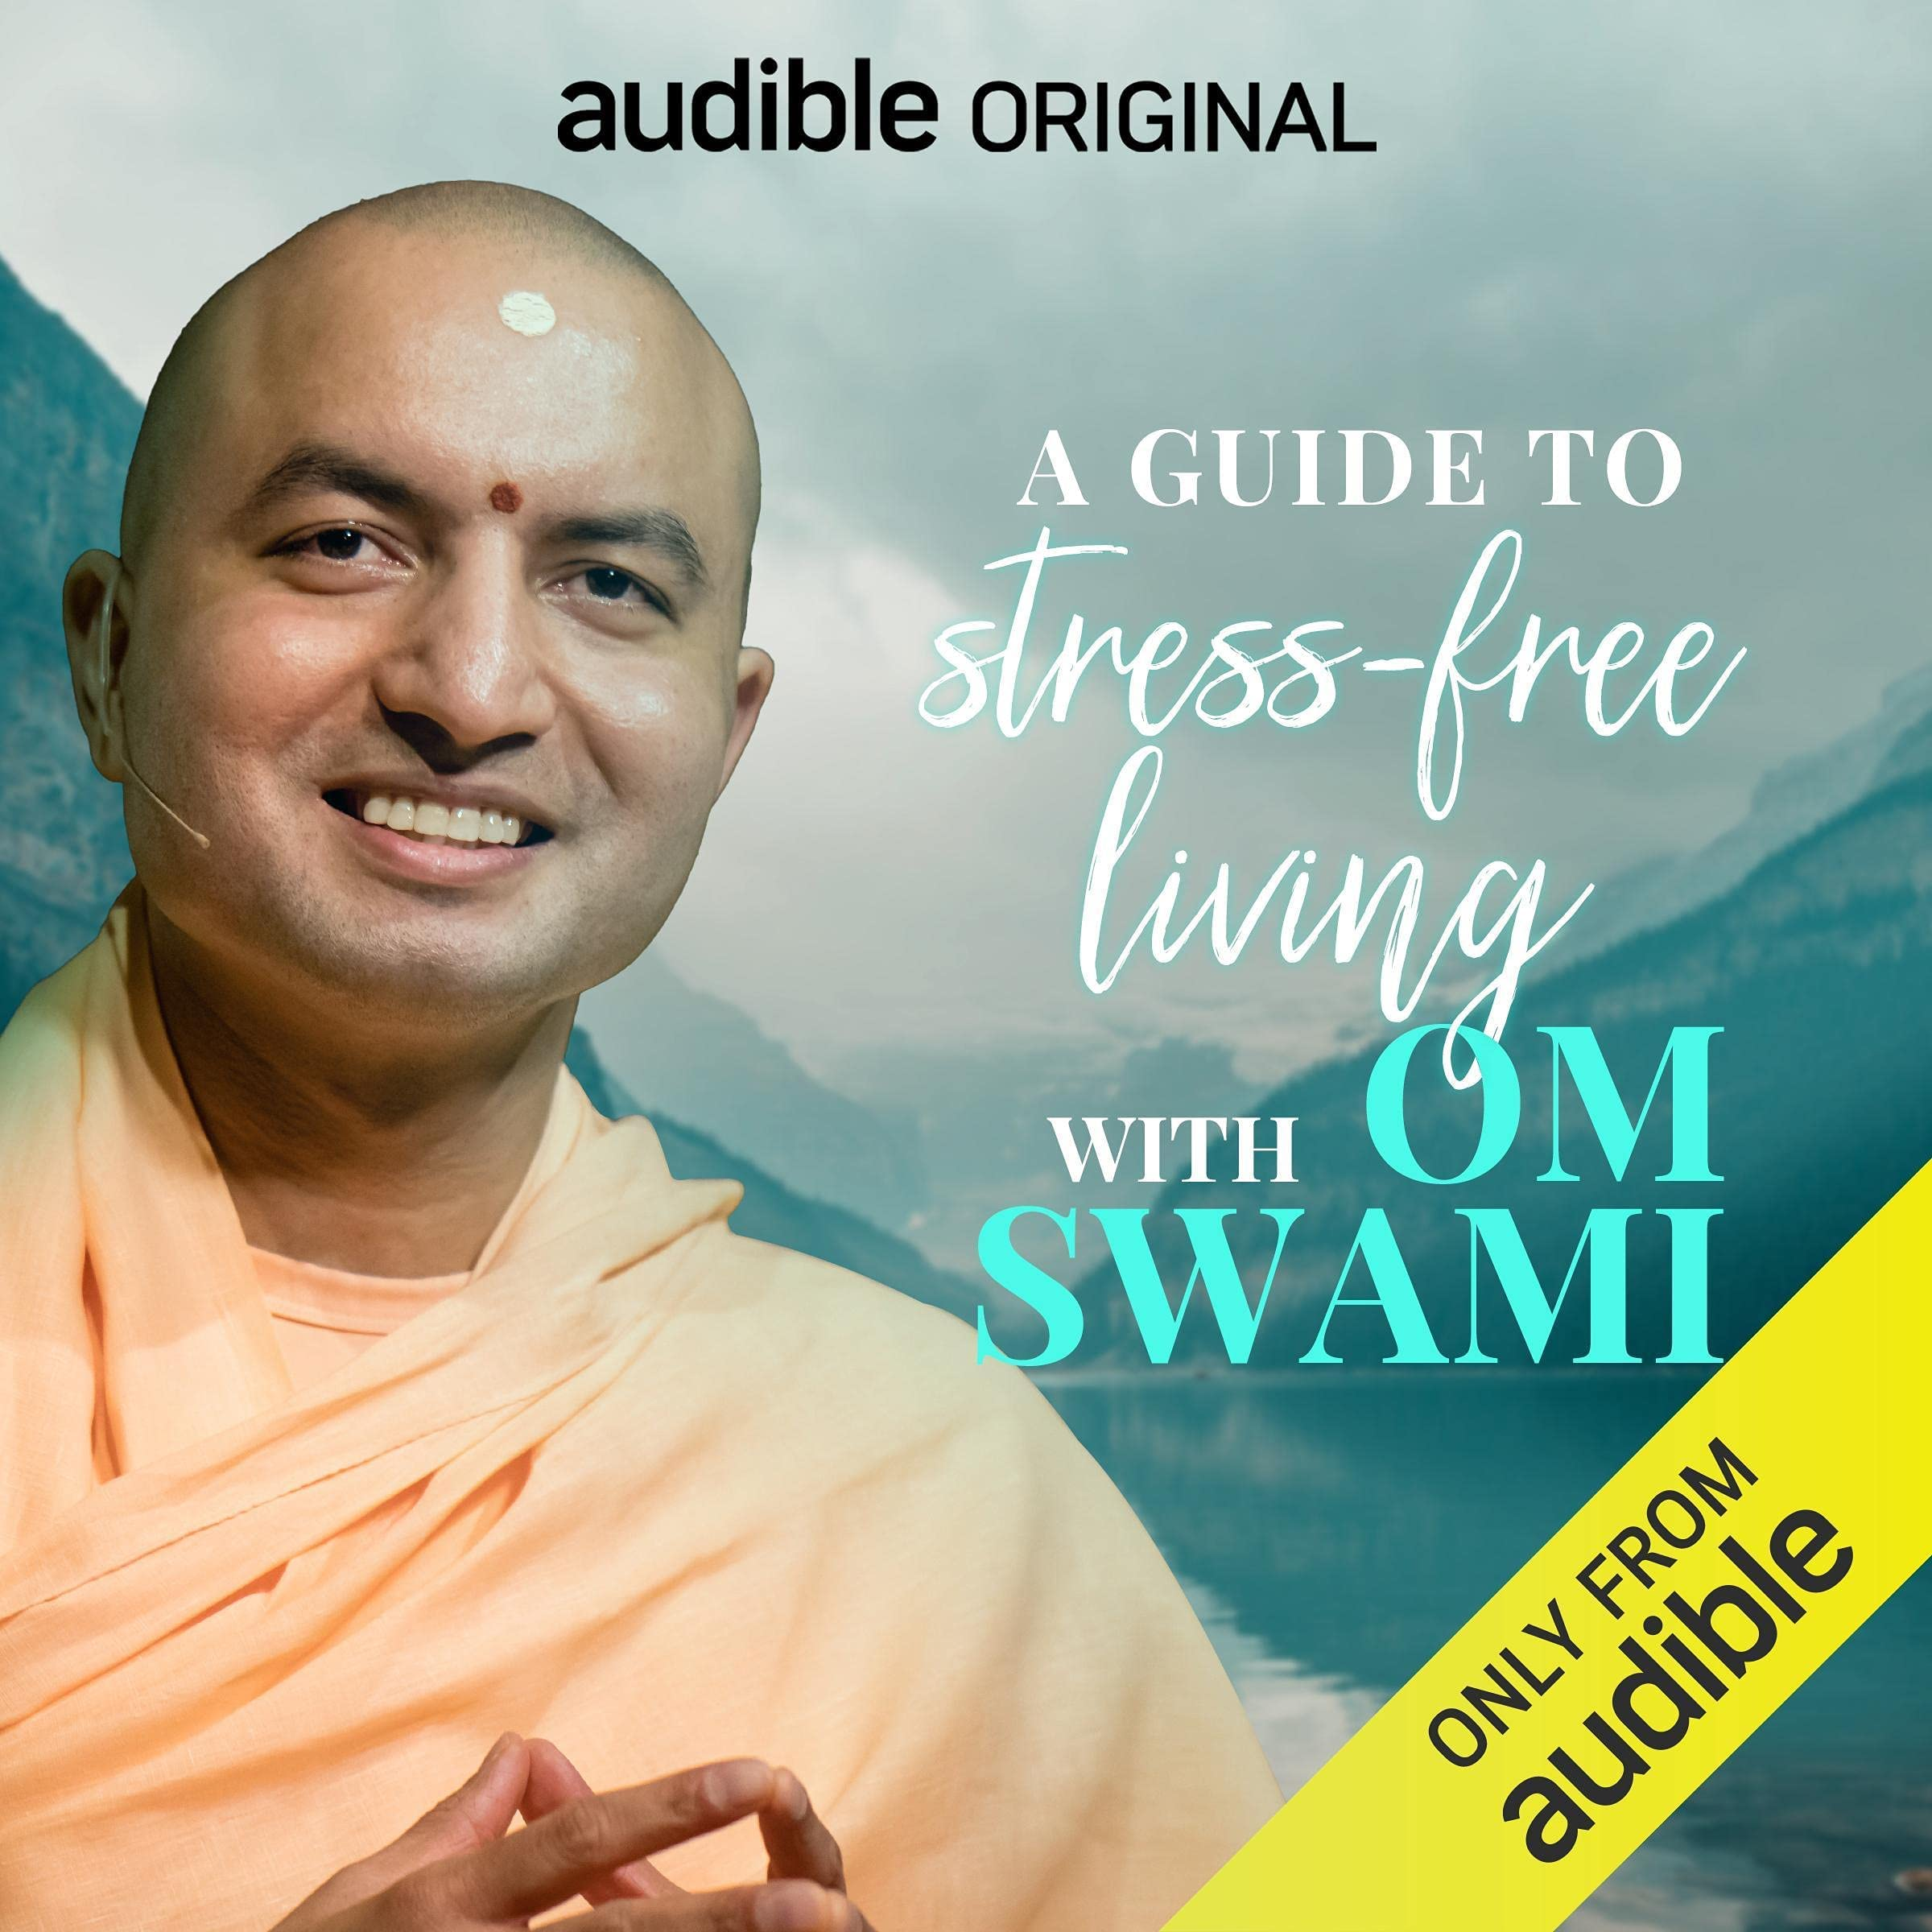 A Guide to Stress Free Living by Om Swami